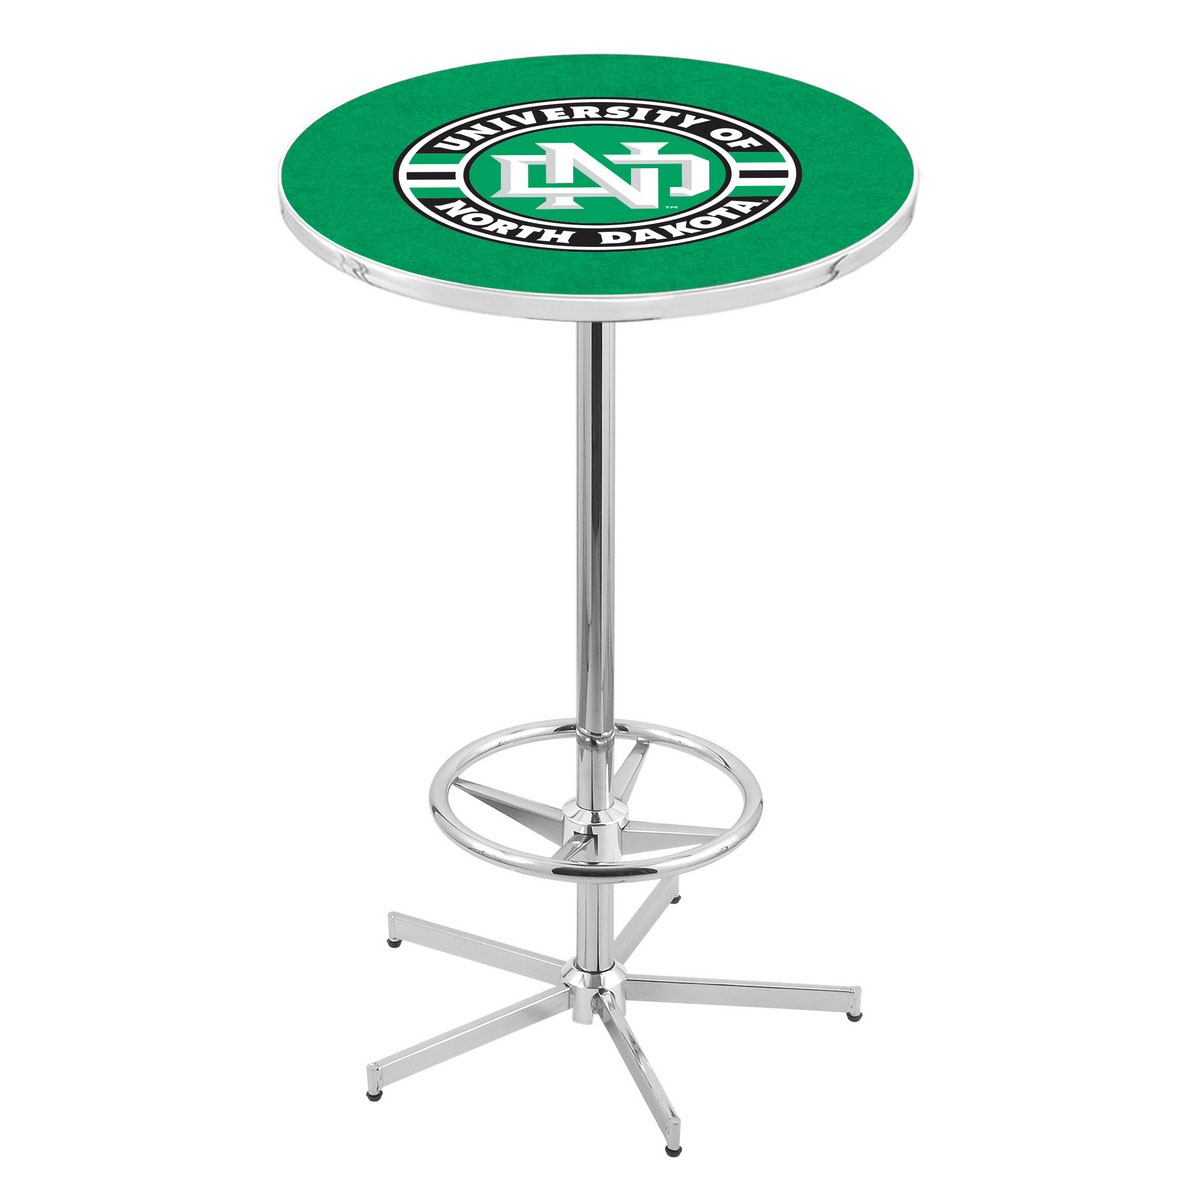 View Chrome North Dakota Pub Table Product Photo